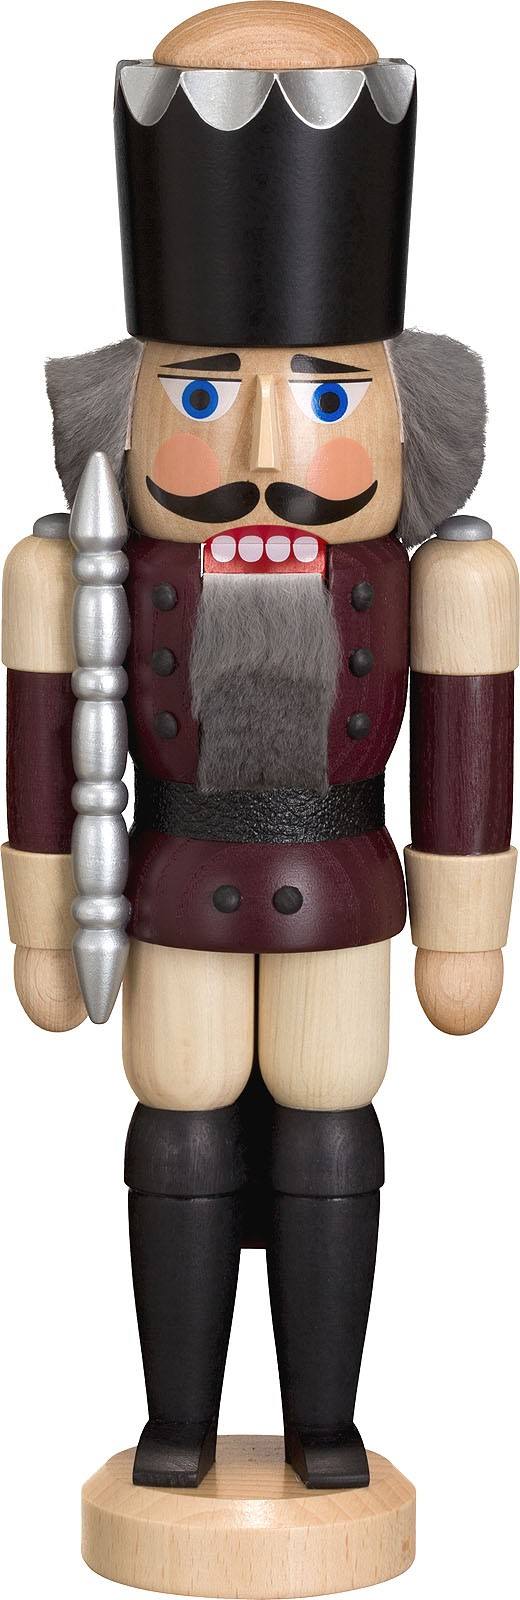 nutcracker king, ash tree glazed, aubergine-coloured